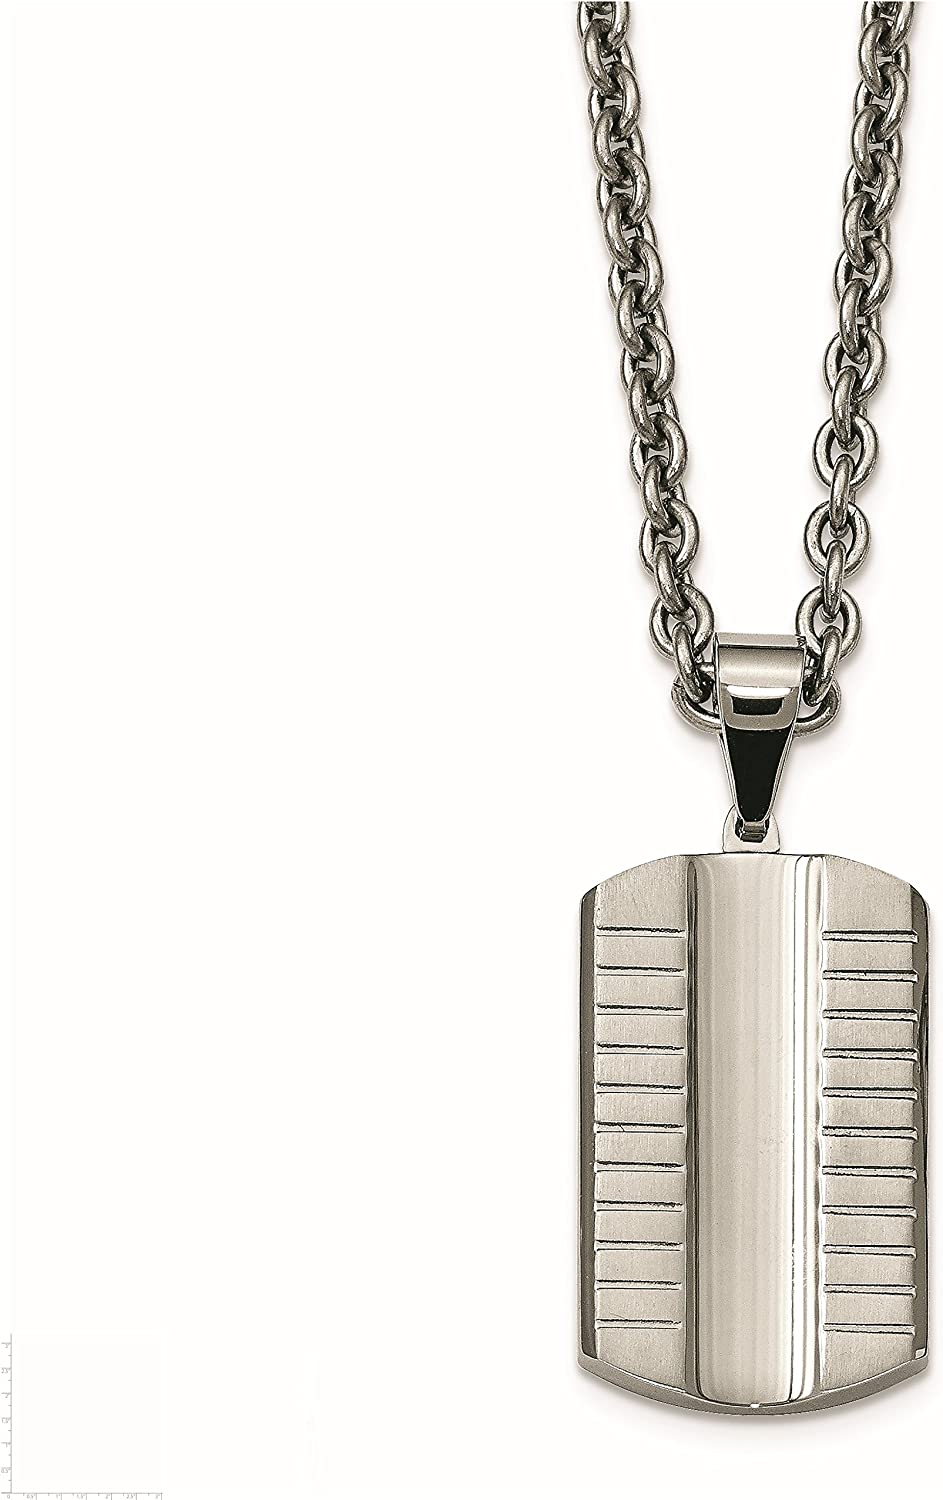 Stainless Steel Brushed Polished Grooved Concaved Dogtag Necklace 33x6mm 24 Inches